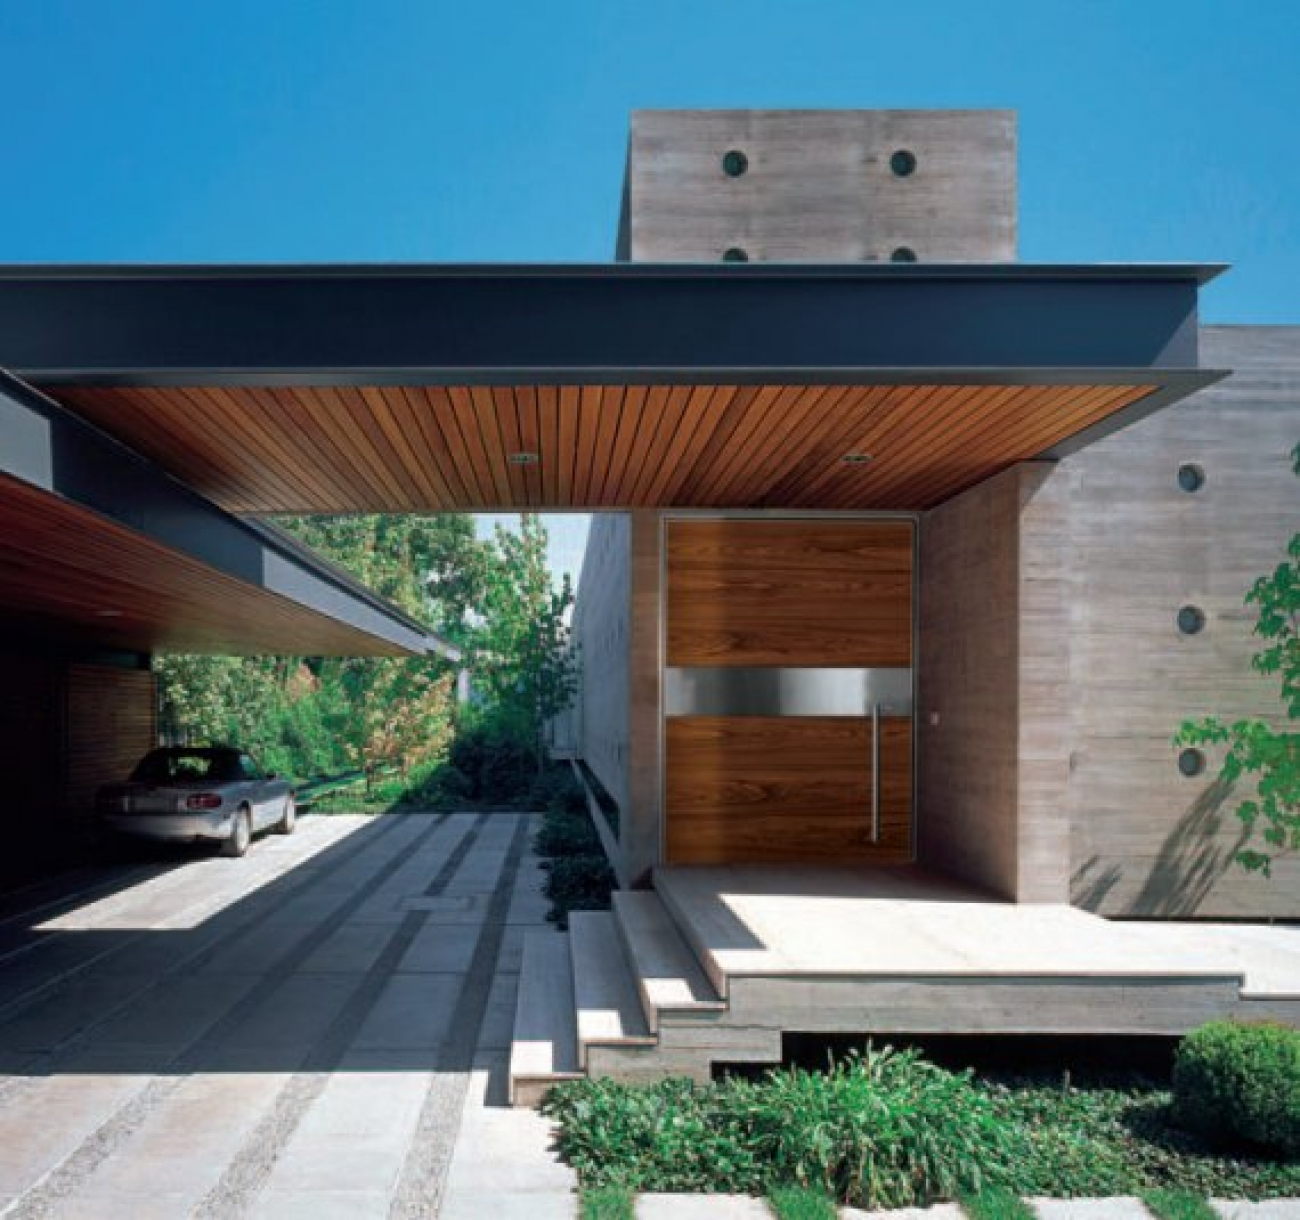 Puertas de dise o timberplan for Contemporary carport design architecture